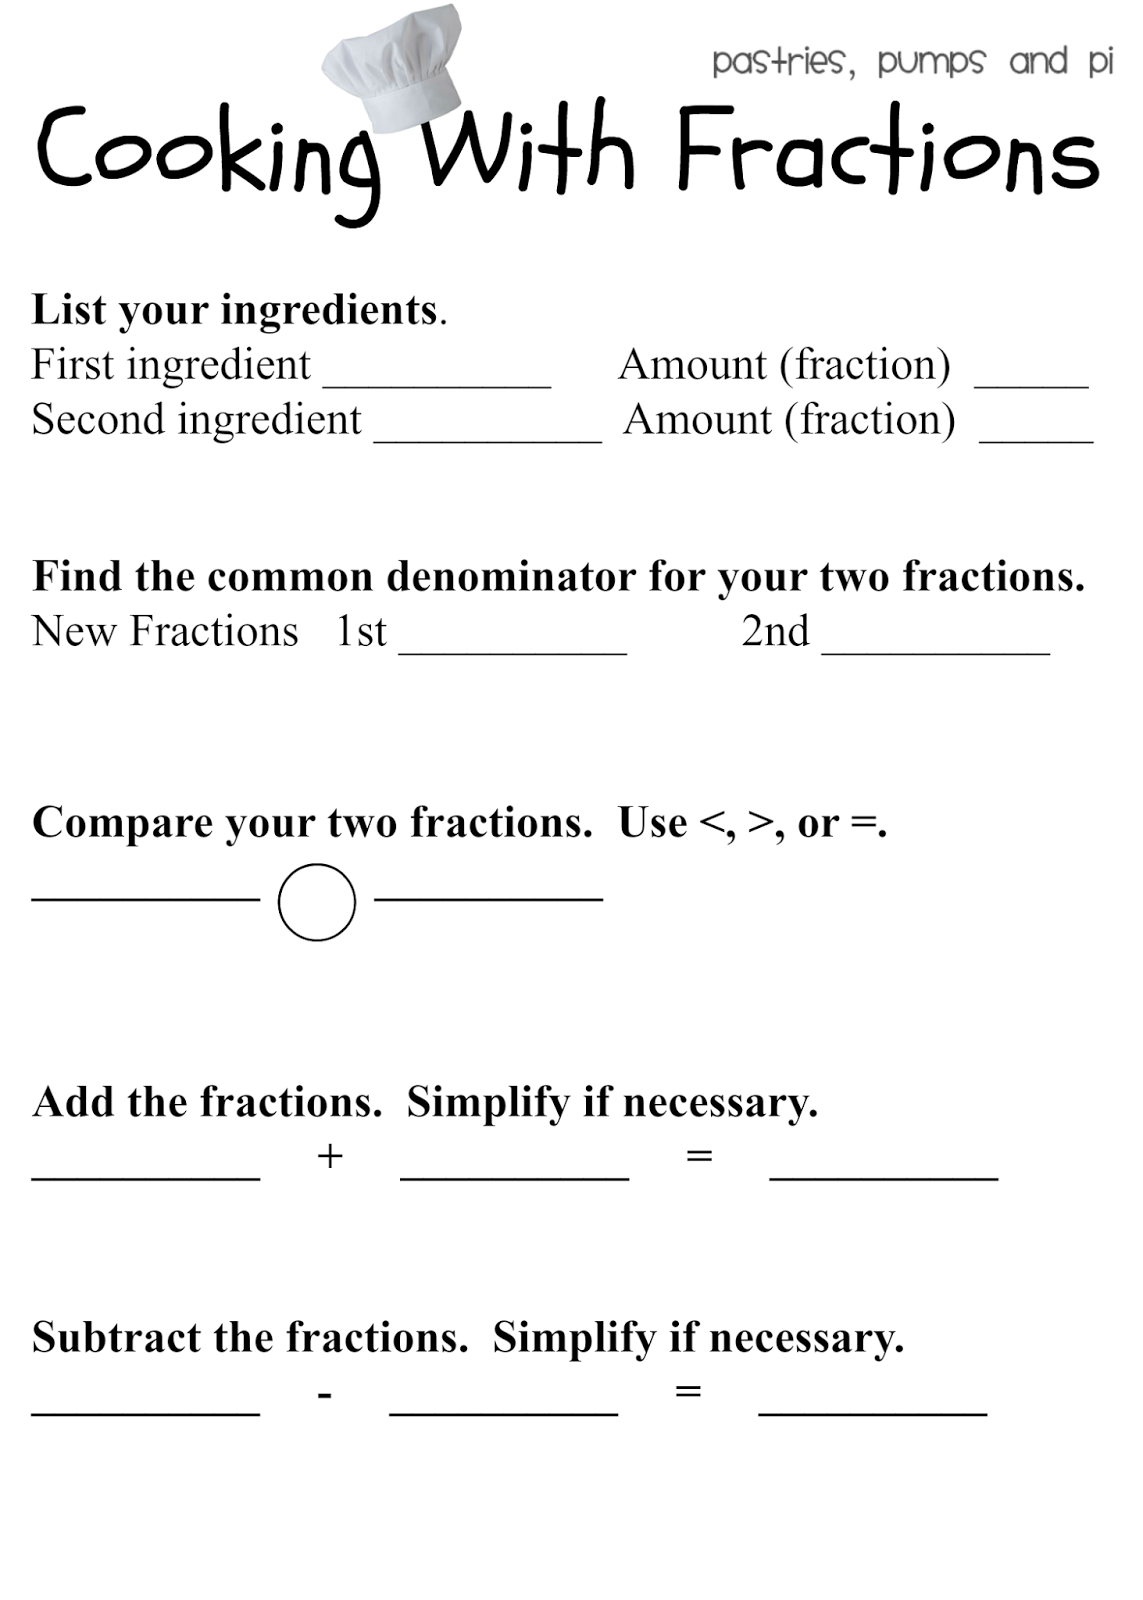 Cooking With Fractions Free Printable Pastries Pumps And Pi Fractions Fractions Worksheets Learning Fractions [ 1600 x 1143 Pixel ]